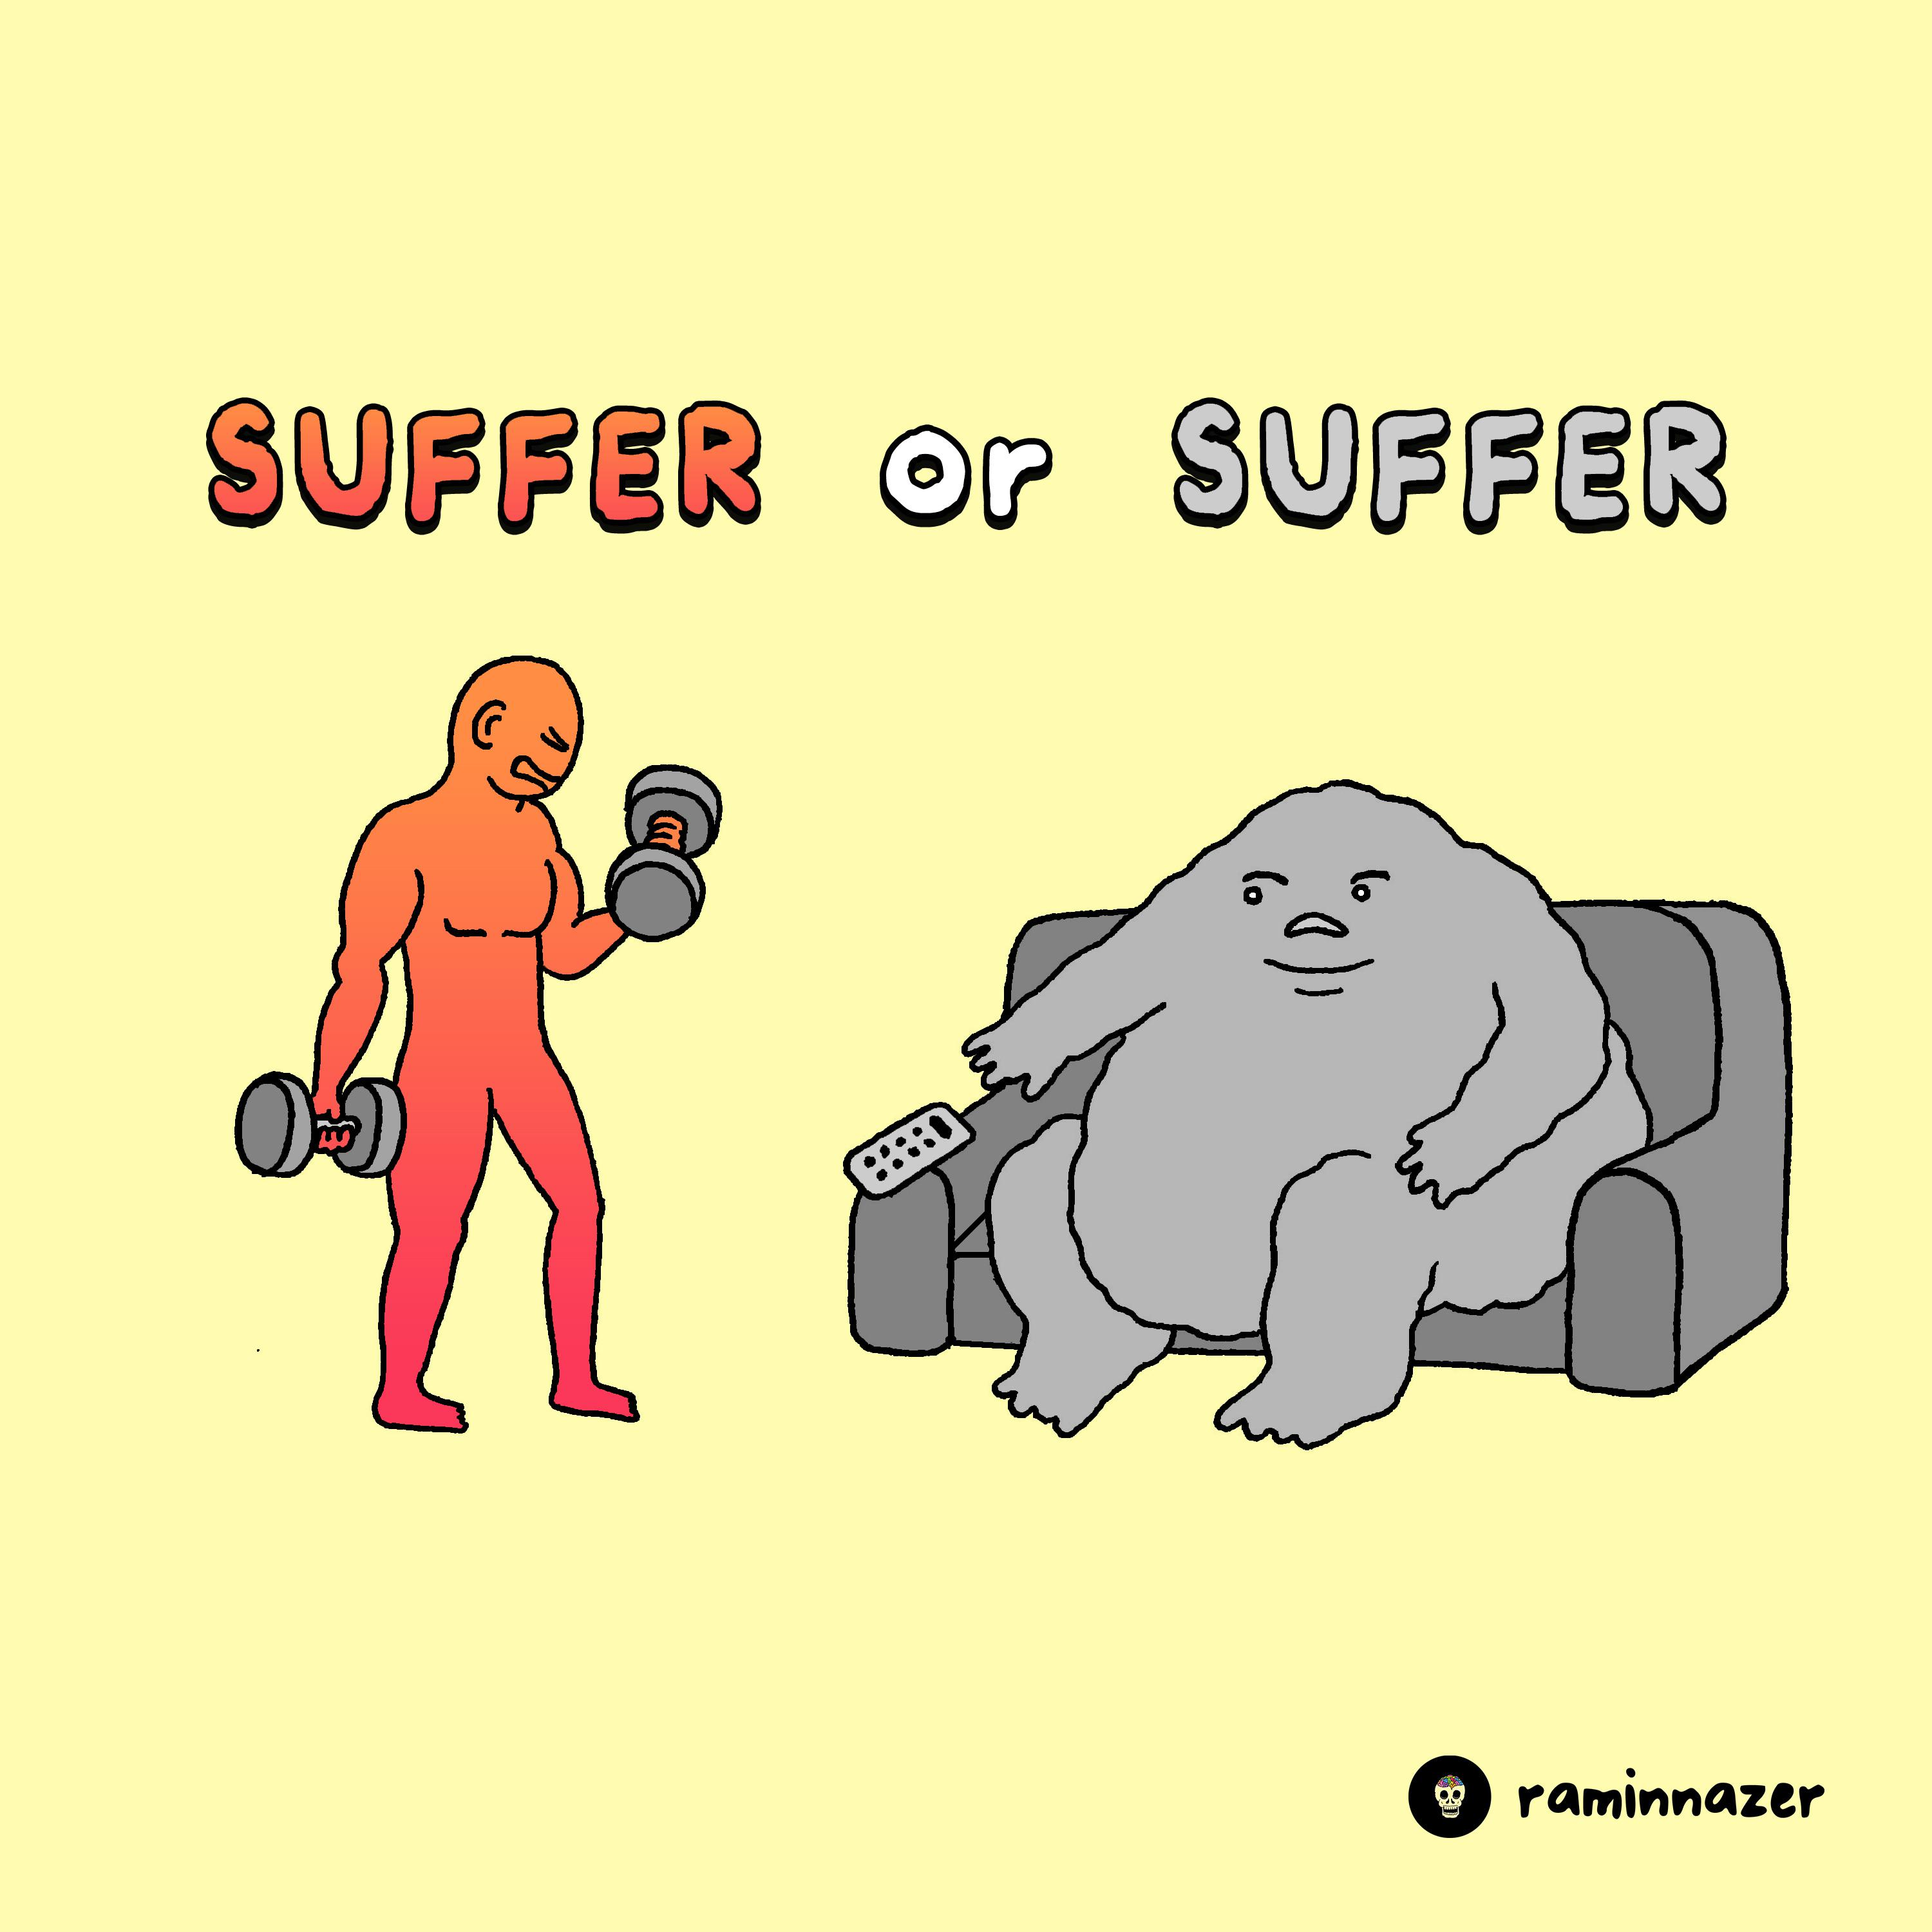 [Image] Suffer OR Suffer